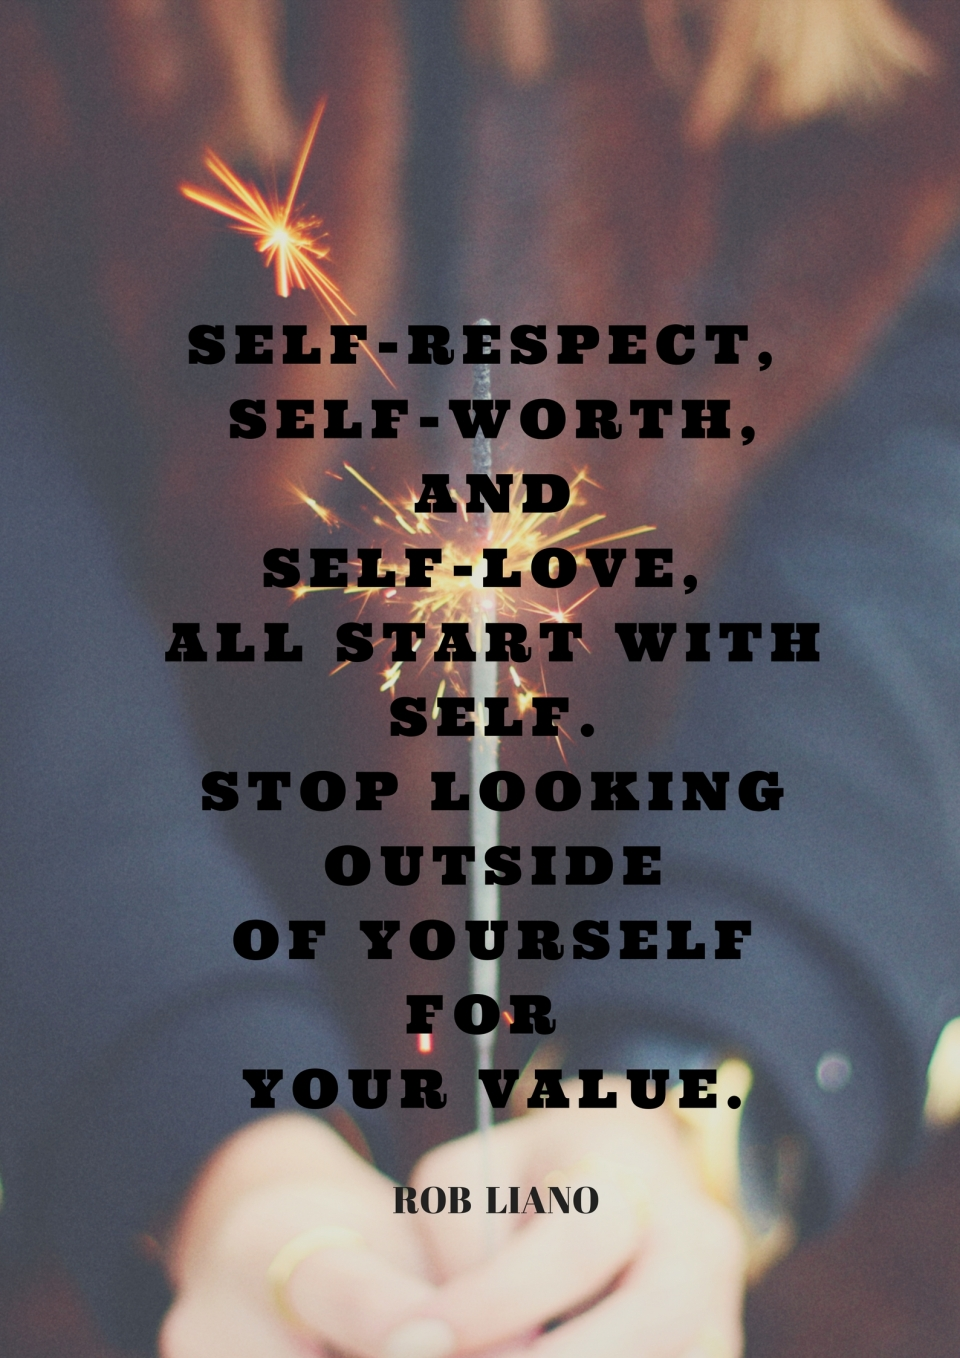 All about self-love (2)